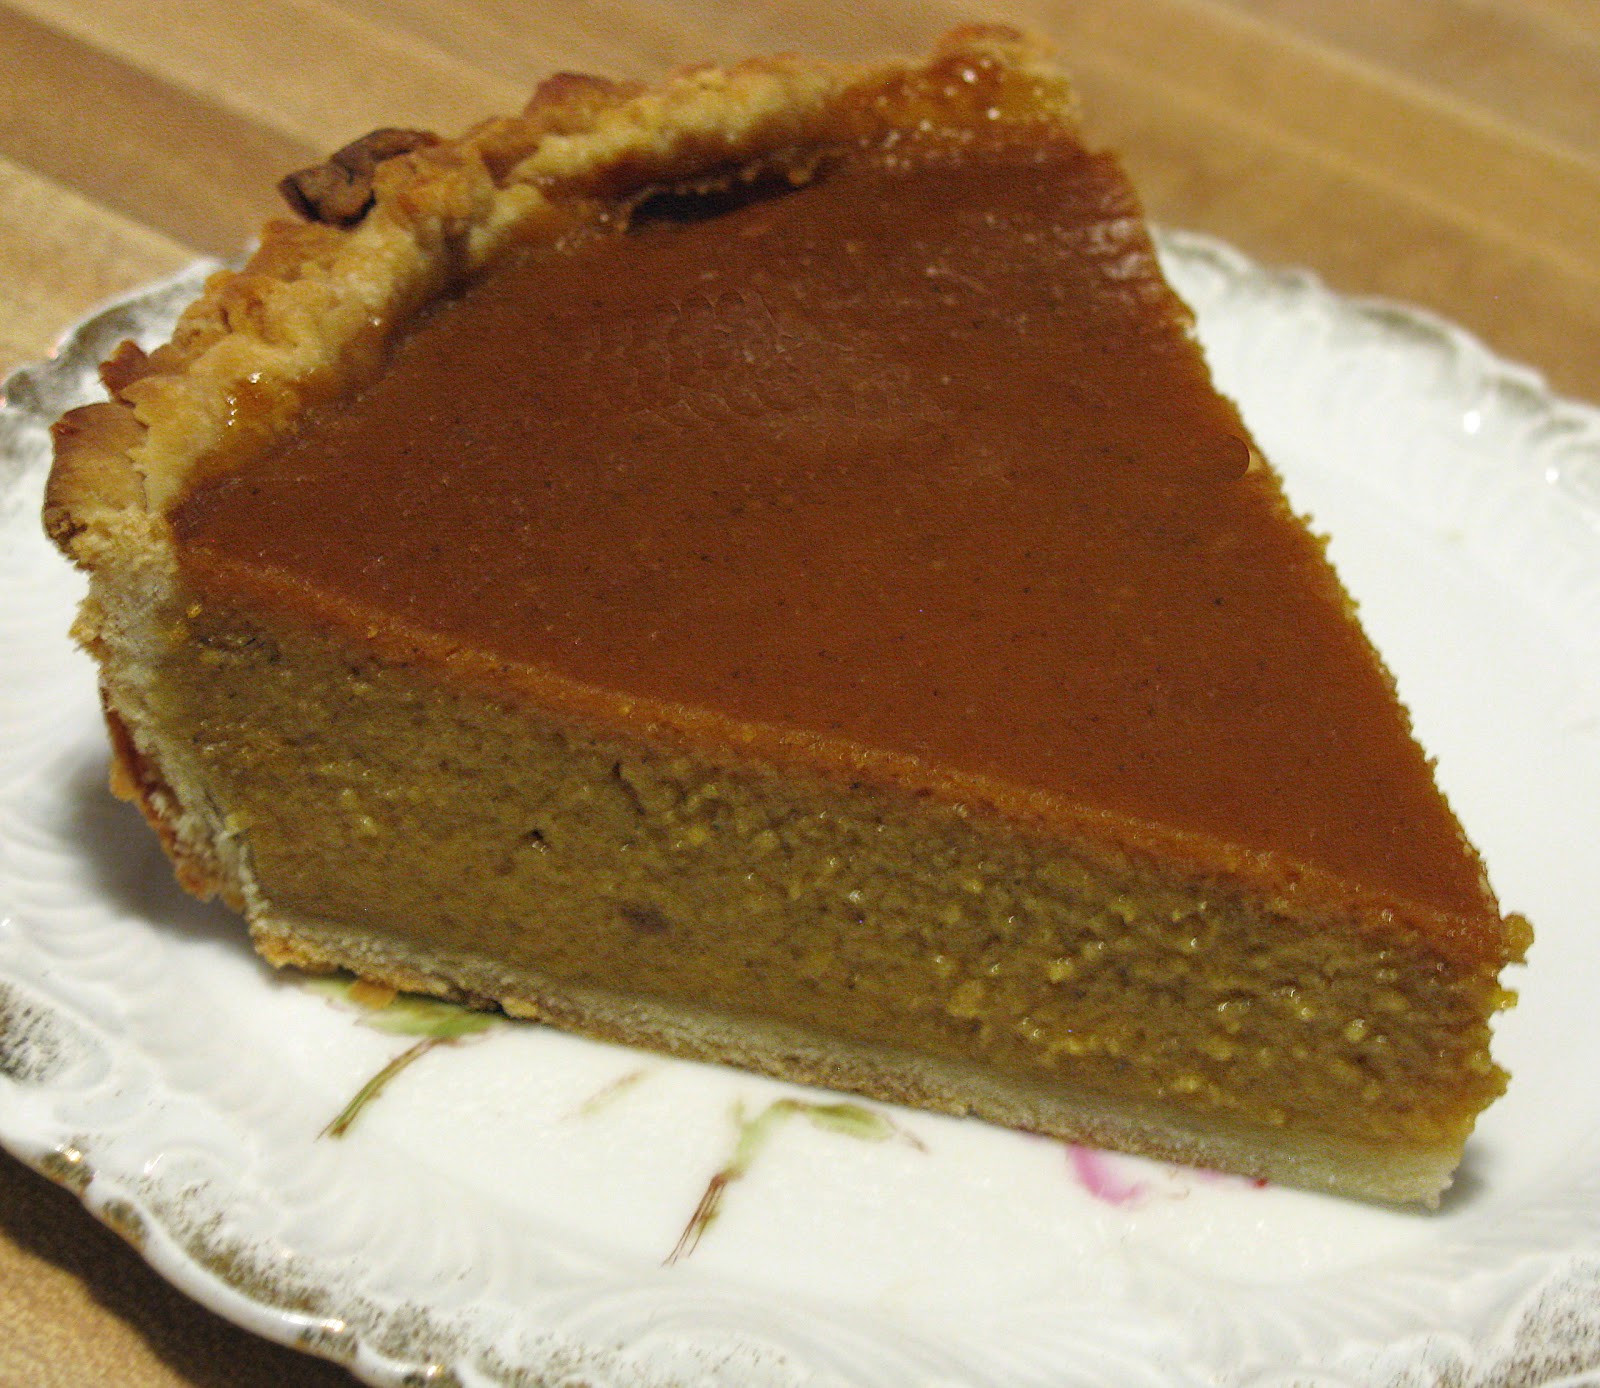 How To Make Pumpkin Pie From Scratch  Food for A Hungry Soul Pumpkin Pie from Scratch